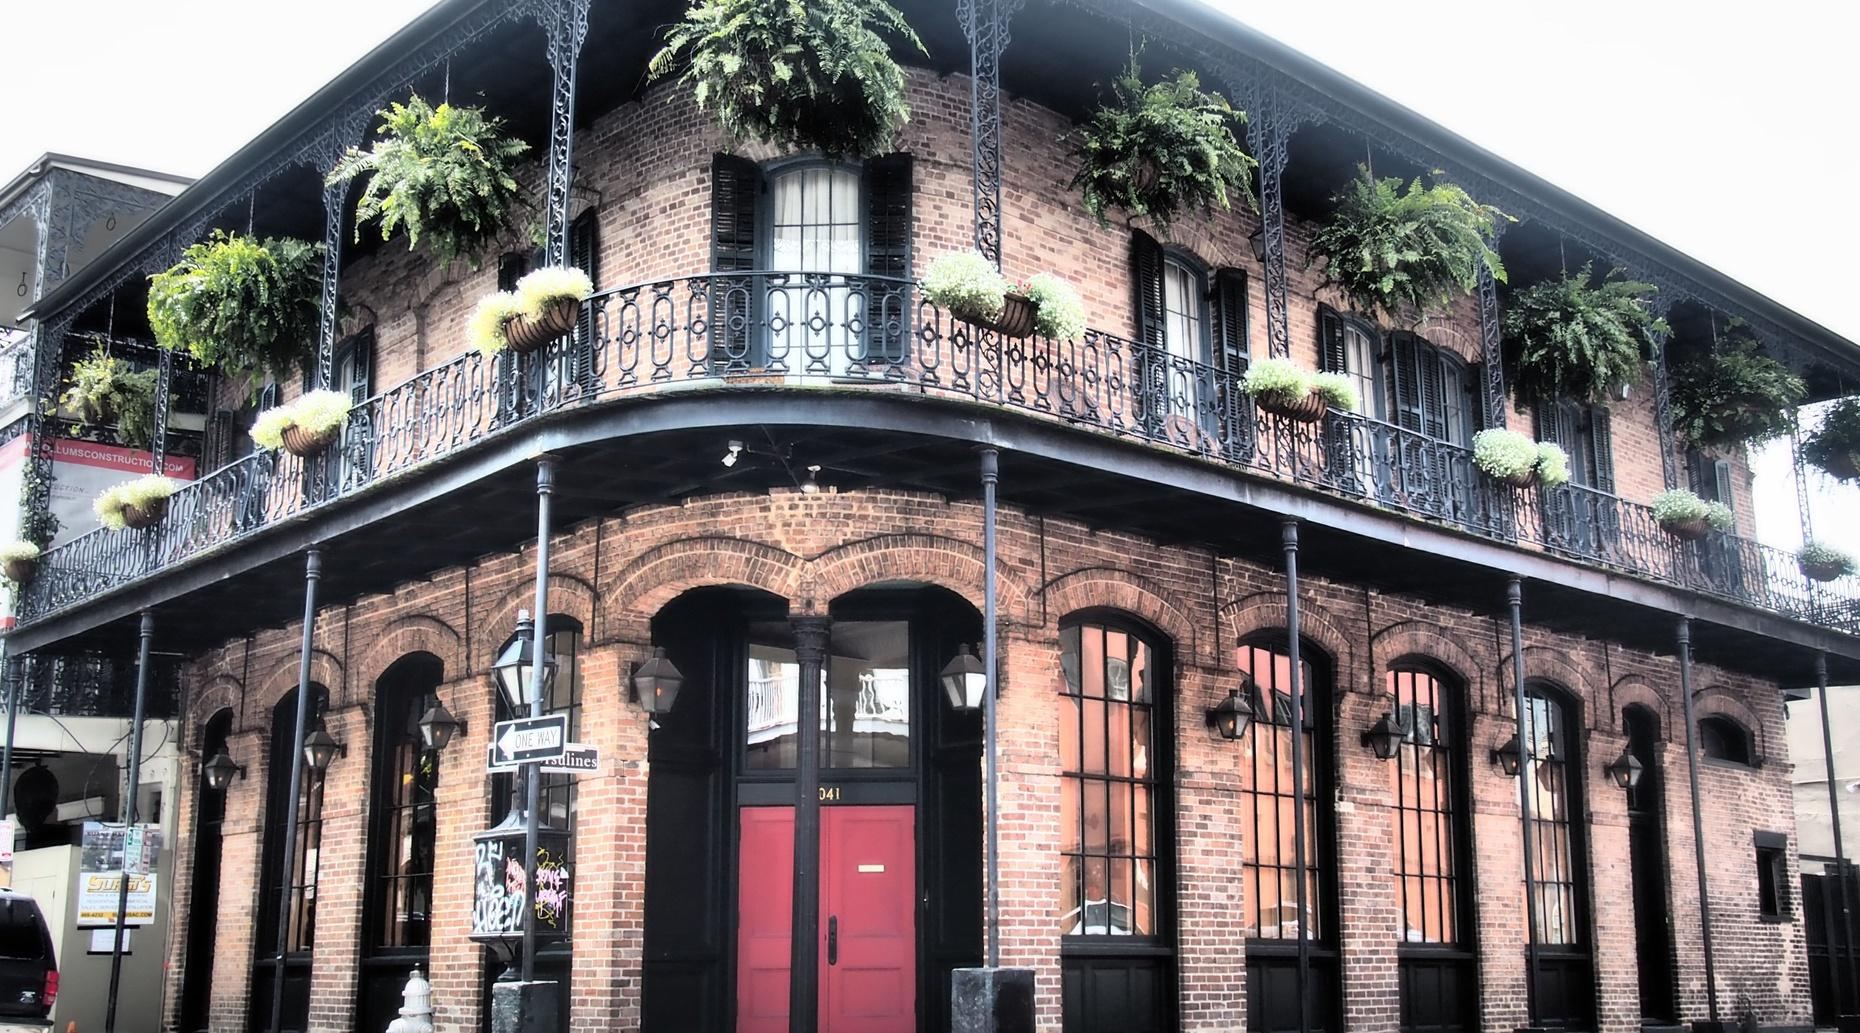 Saints & Sinners Tour of New Orleans